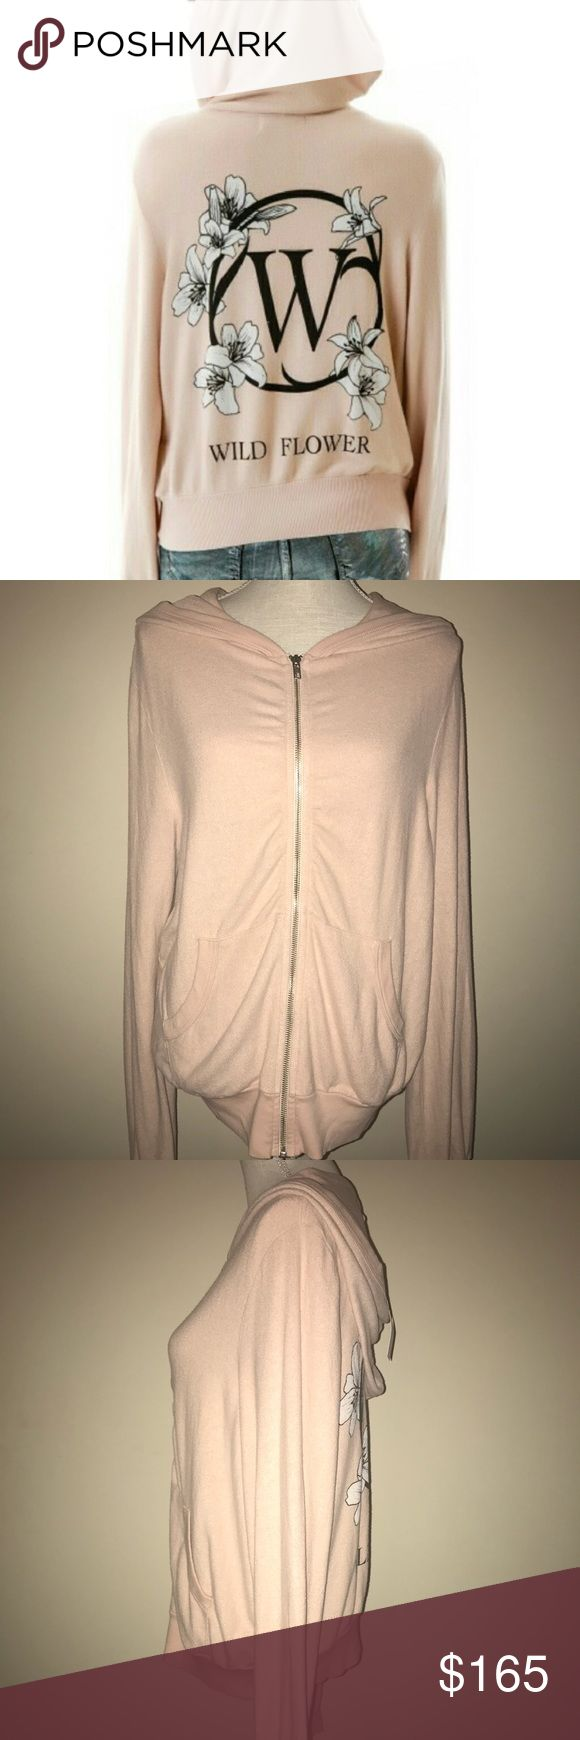 """🆕 Wildfox Wild Flower Girl Malibu Zip-Up size M NWT Wildfox Couture 'Wild Flower Girl' Malibu Zip-up hoodie. Size Medium. Baggy oversized fit. Approximate measured length is 25"""". Fabric Content: 47% rayon/47%polyester/6% spandex. Traditional Wildfox pre-pilled super soft fabric. The color is a nude/natural color. From the 'Daisy's Girl' collection/Great Gatsby theme. Please view all photos and ask any questions you may have prior to purchasing 💞  ❌No Trades❌   ⭐️Bundle & Save⭐️ Wildfox…"""